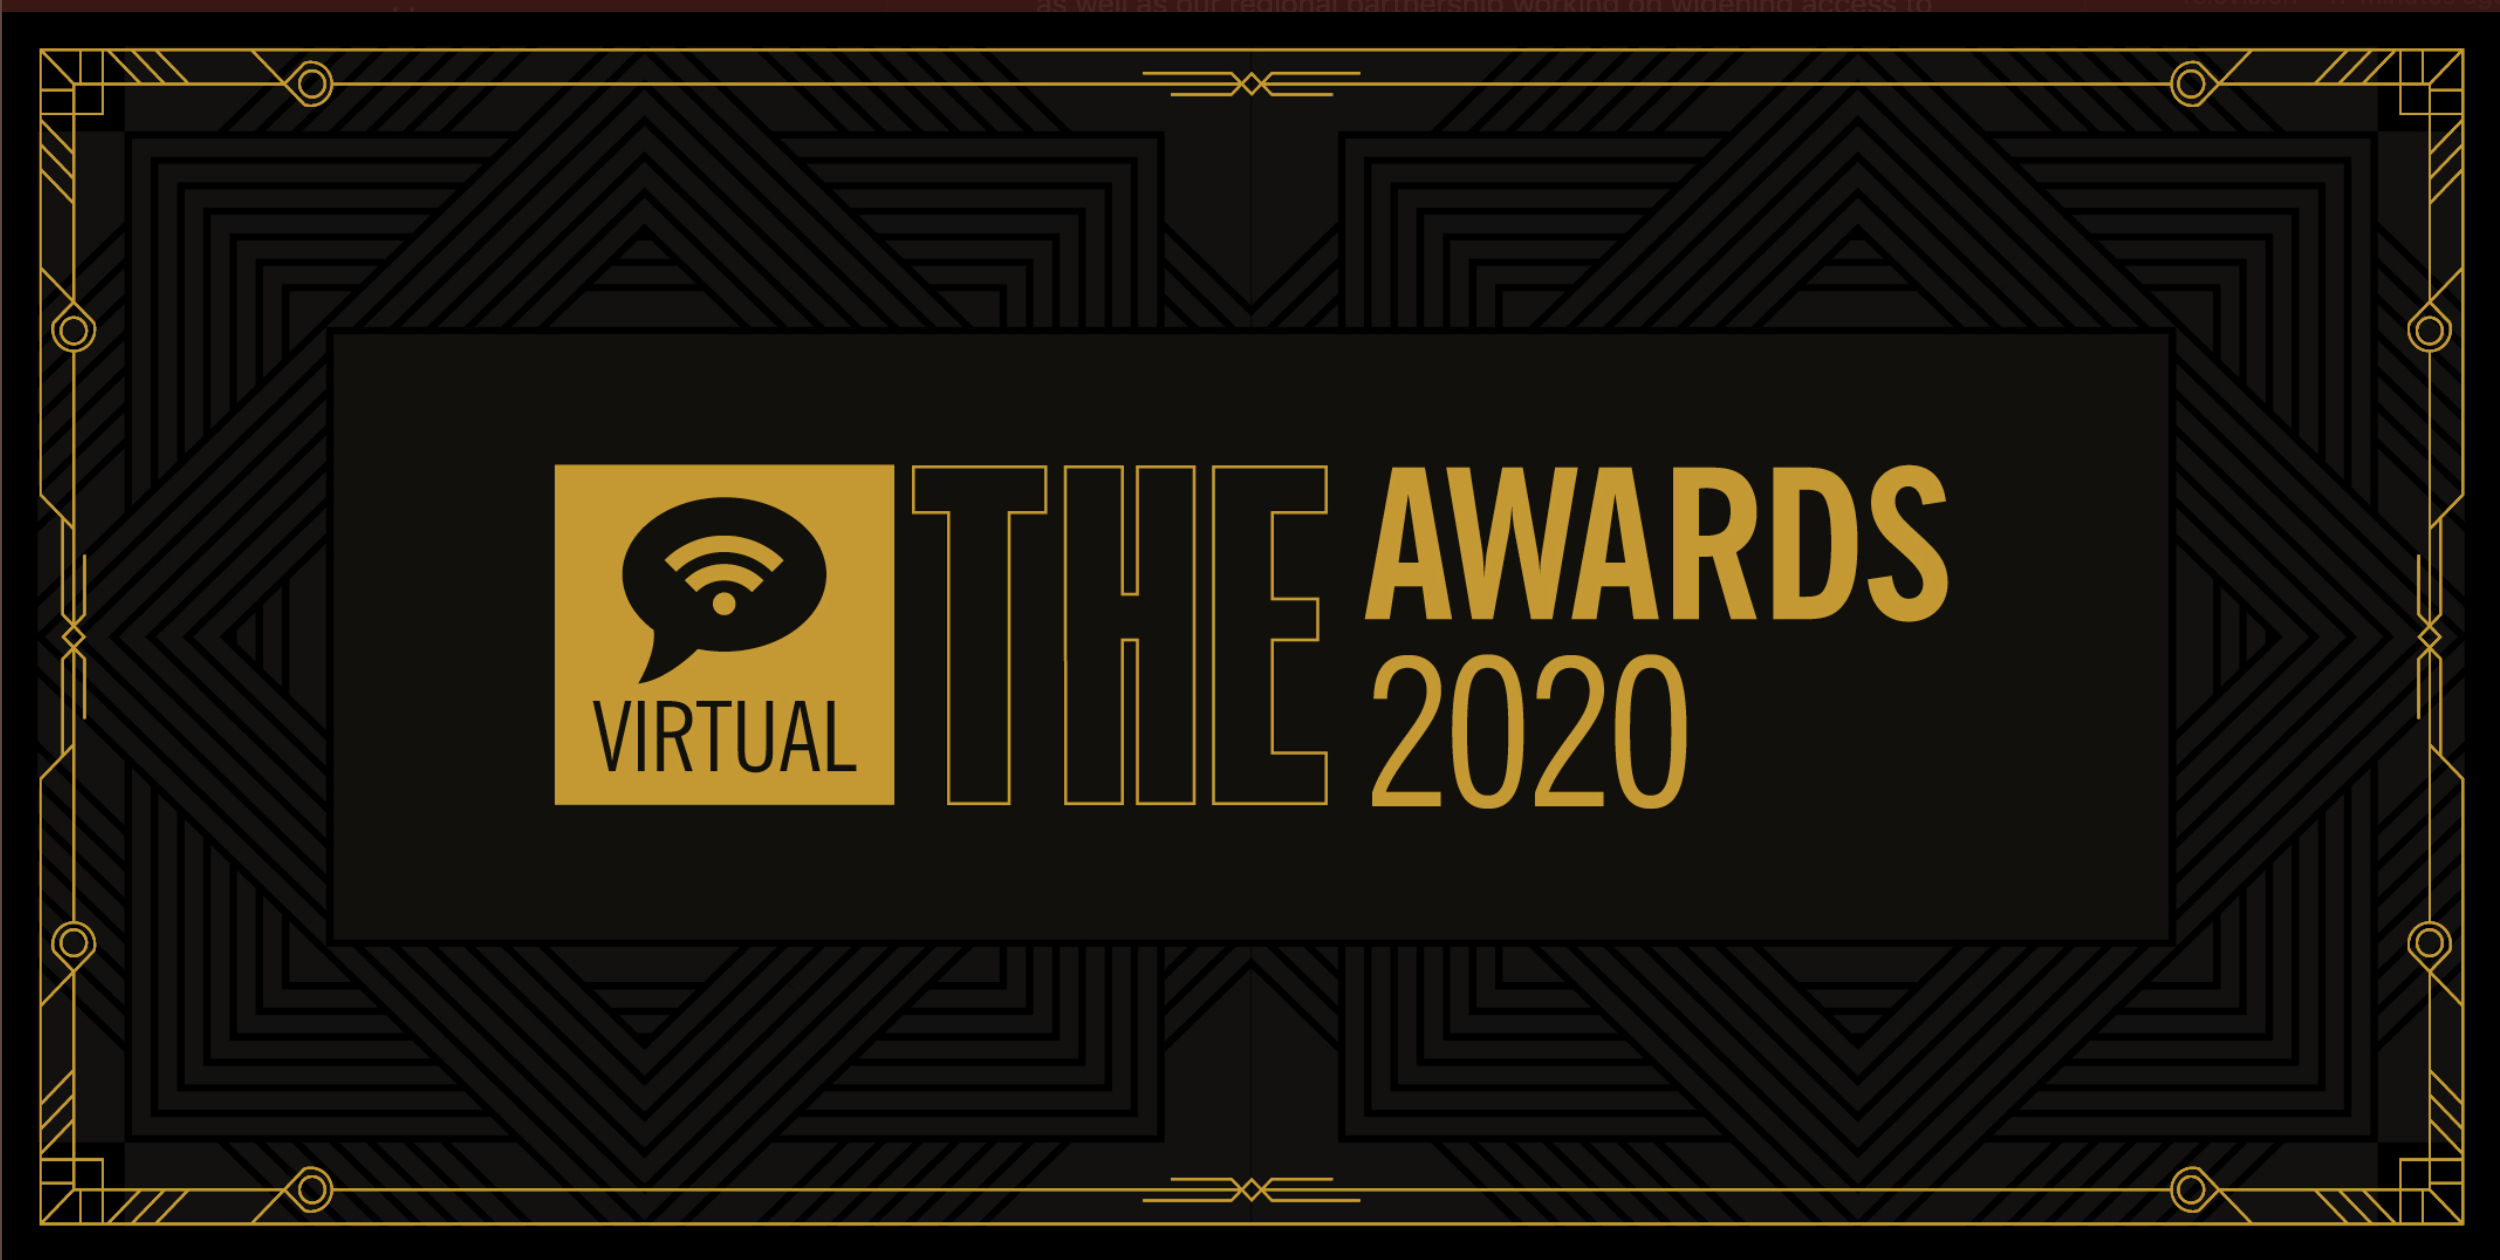 THE Awards Virtual